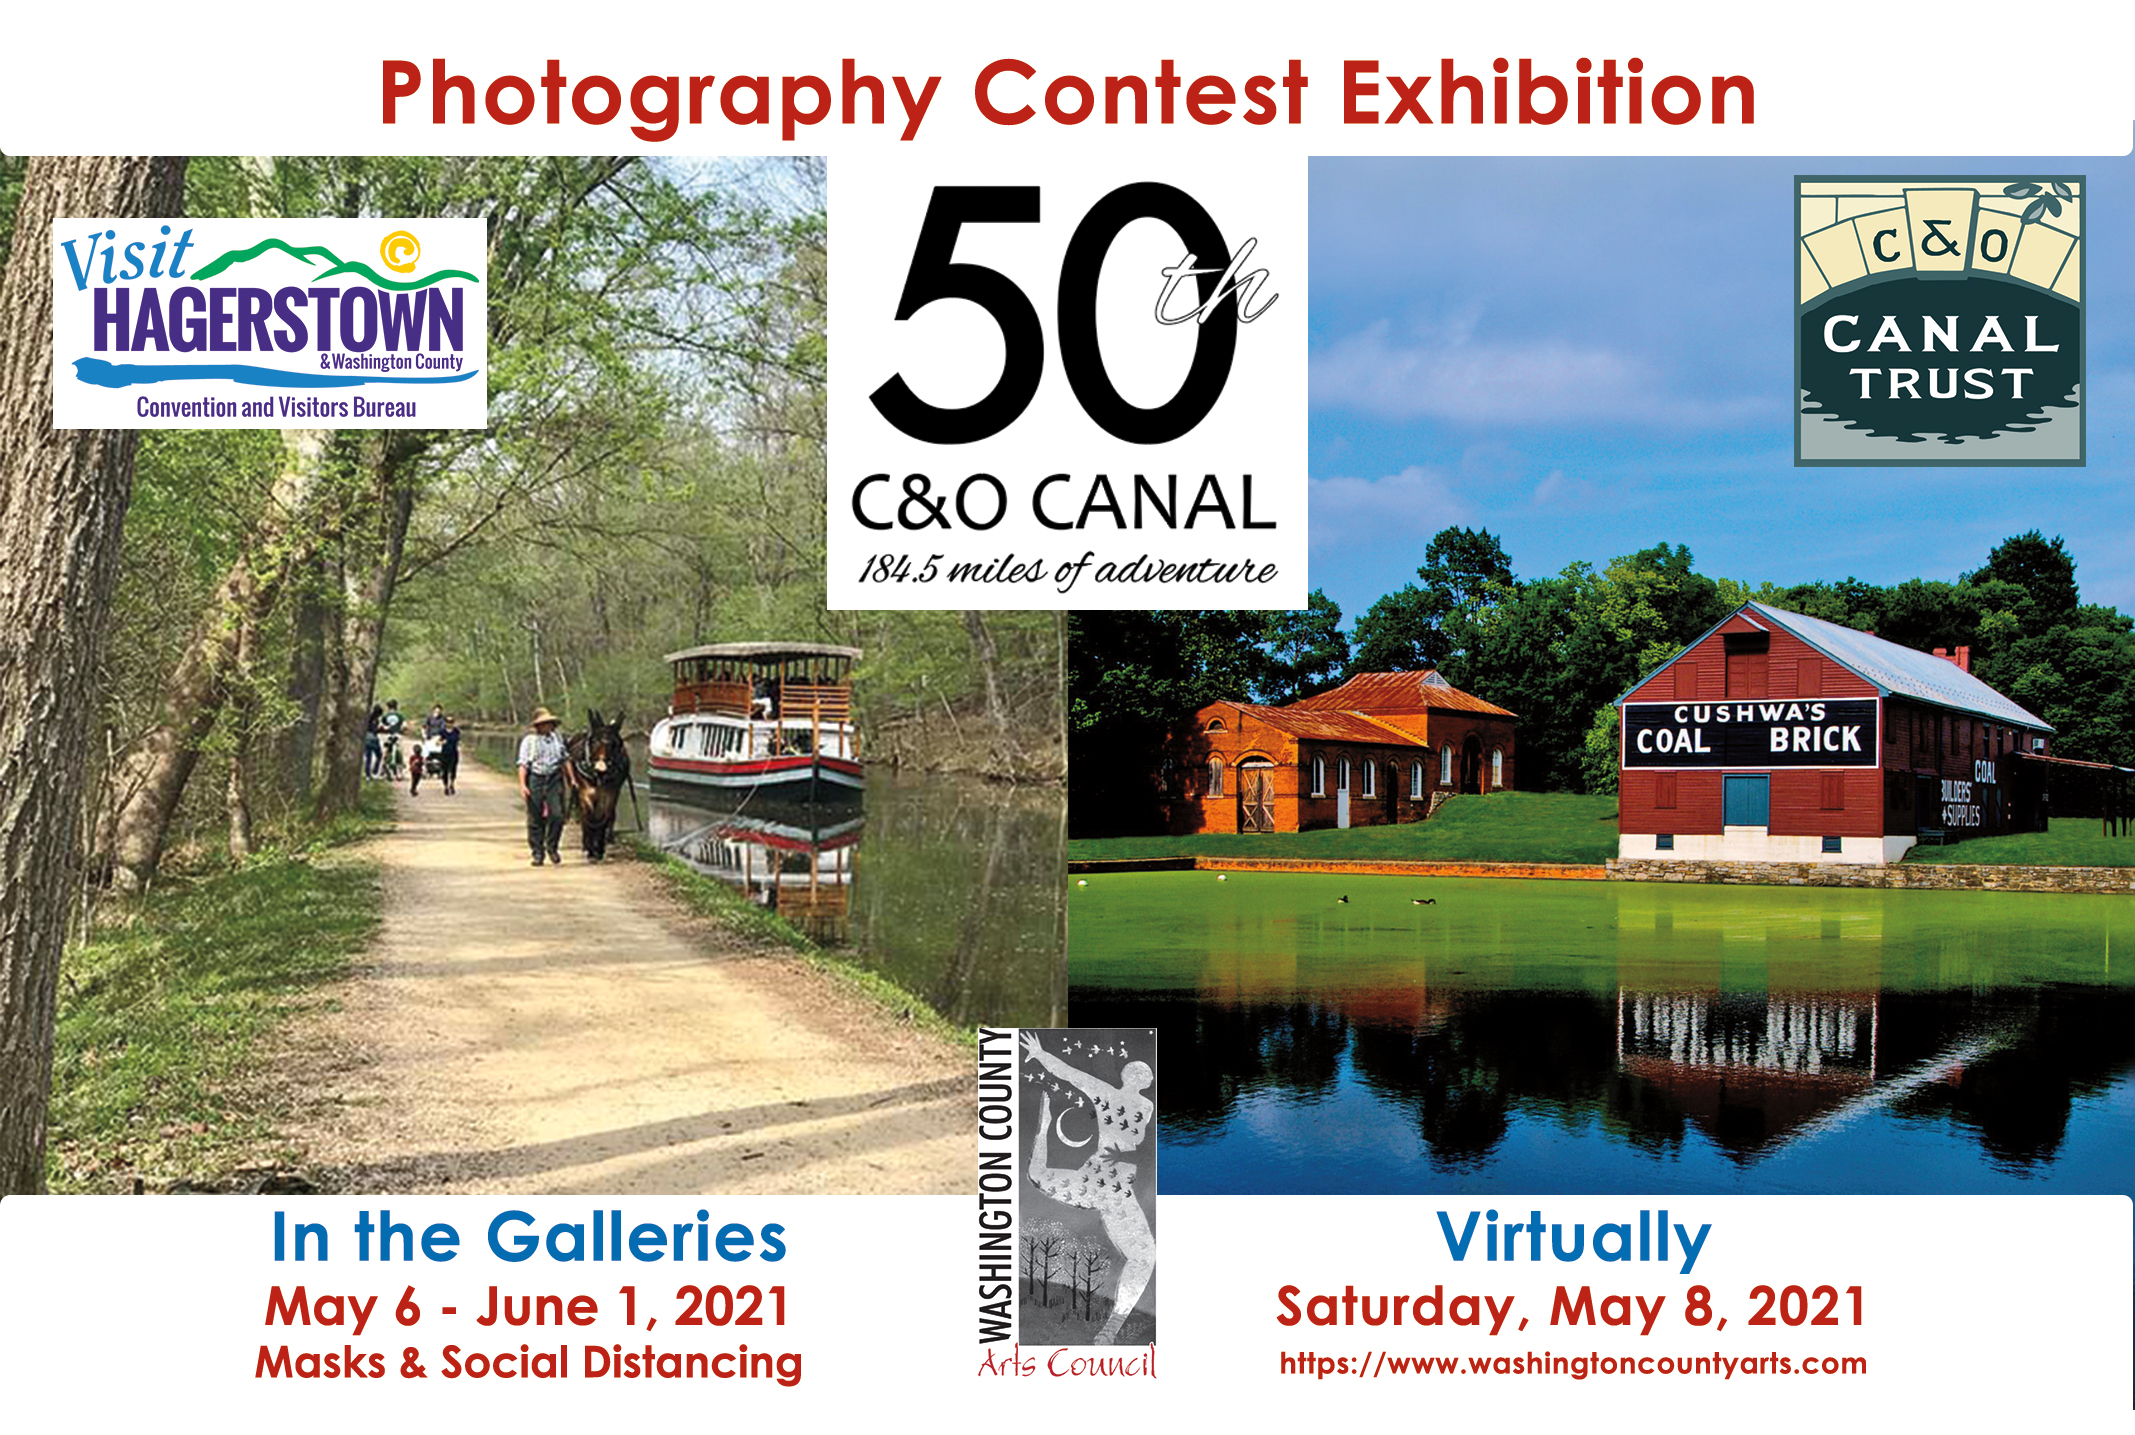 C&O Canal 50th Anniversary Juried Photography Exhibition